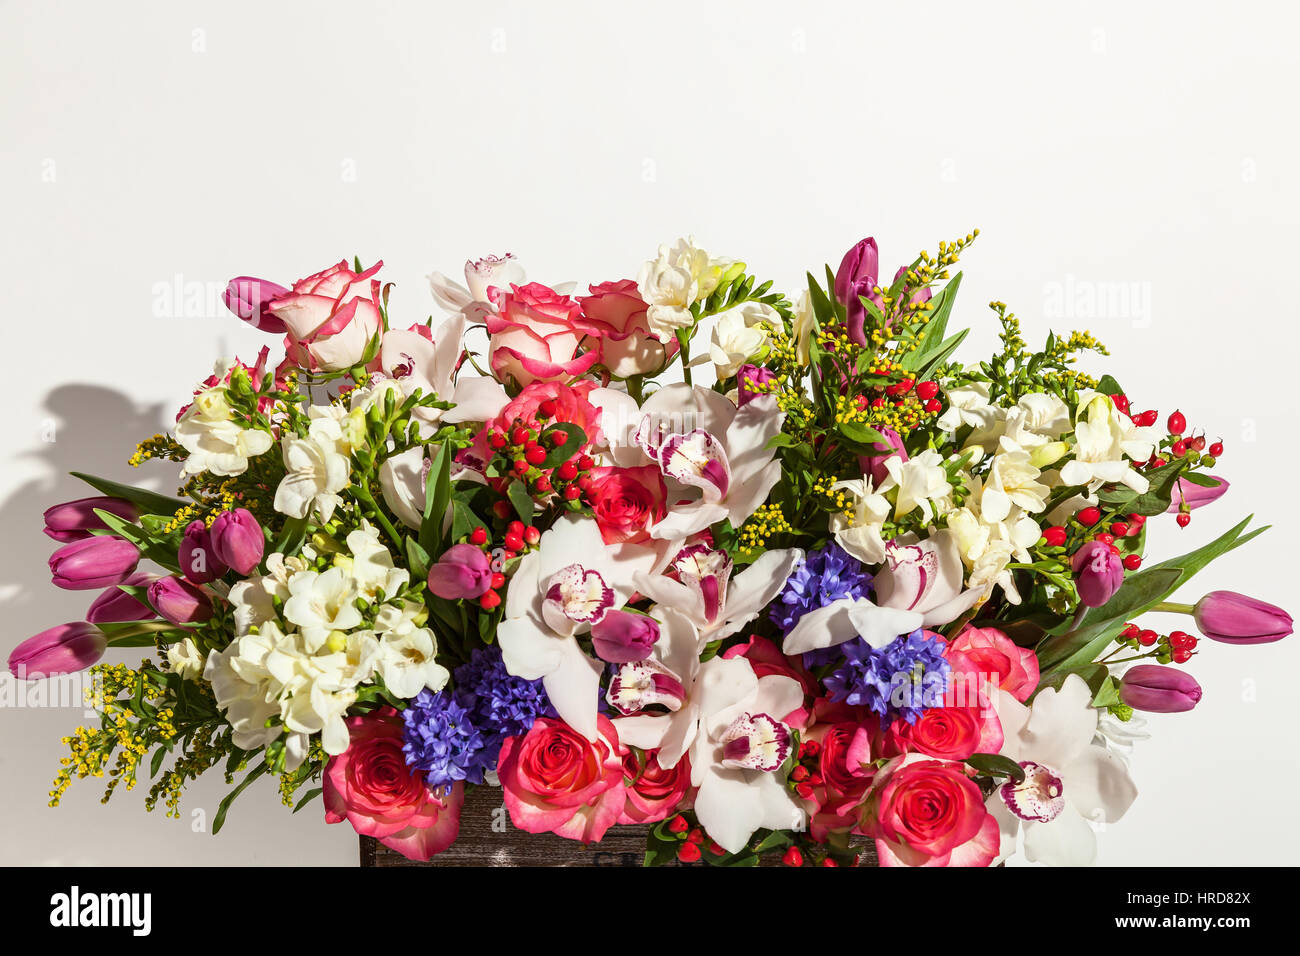 Cute bouquet of different flowers photos images for wedding gown different pictures of flowers great different flower hong guan jin izmirmasajfo Gallery